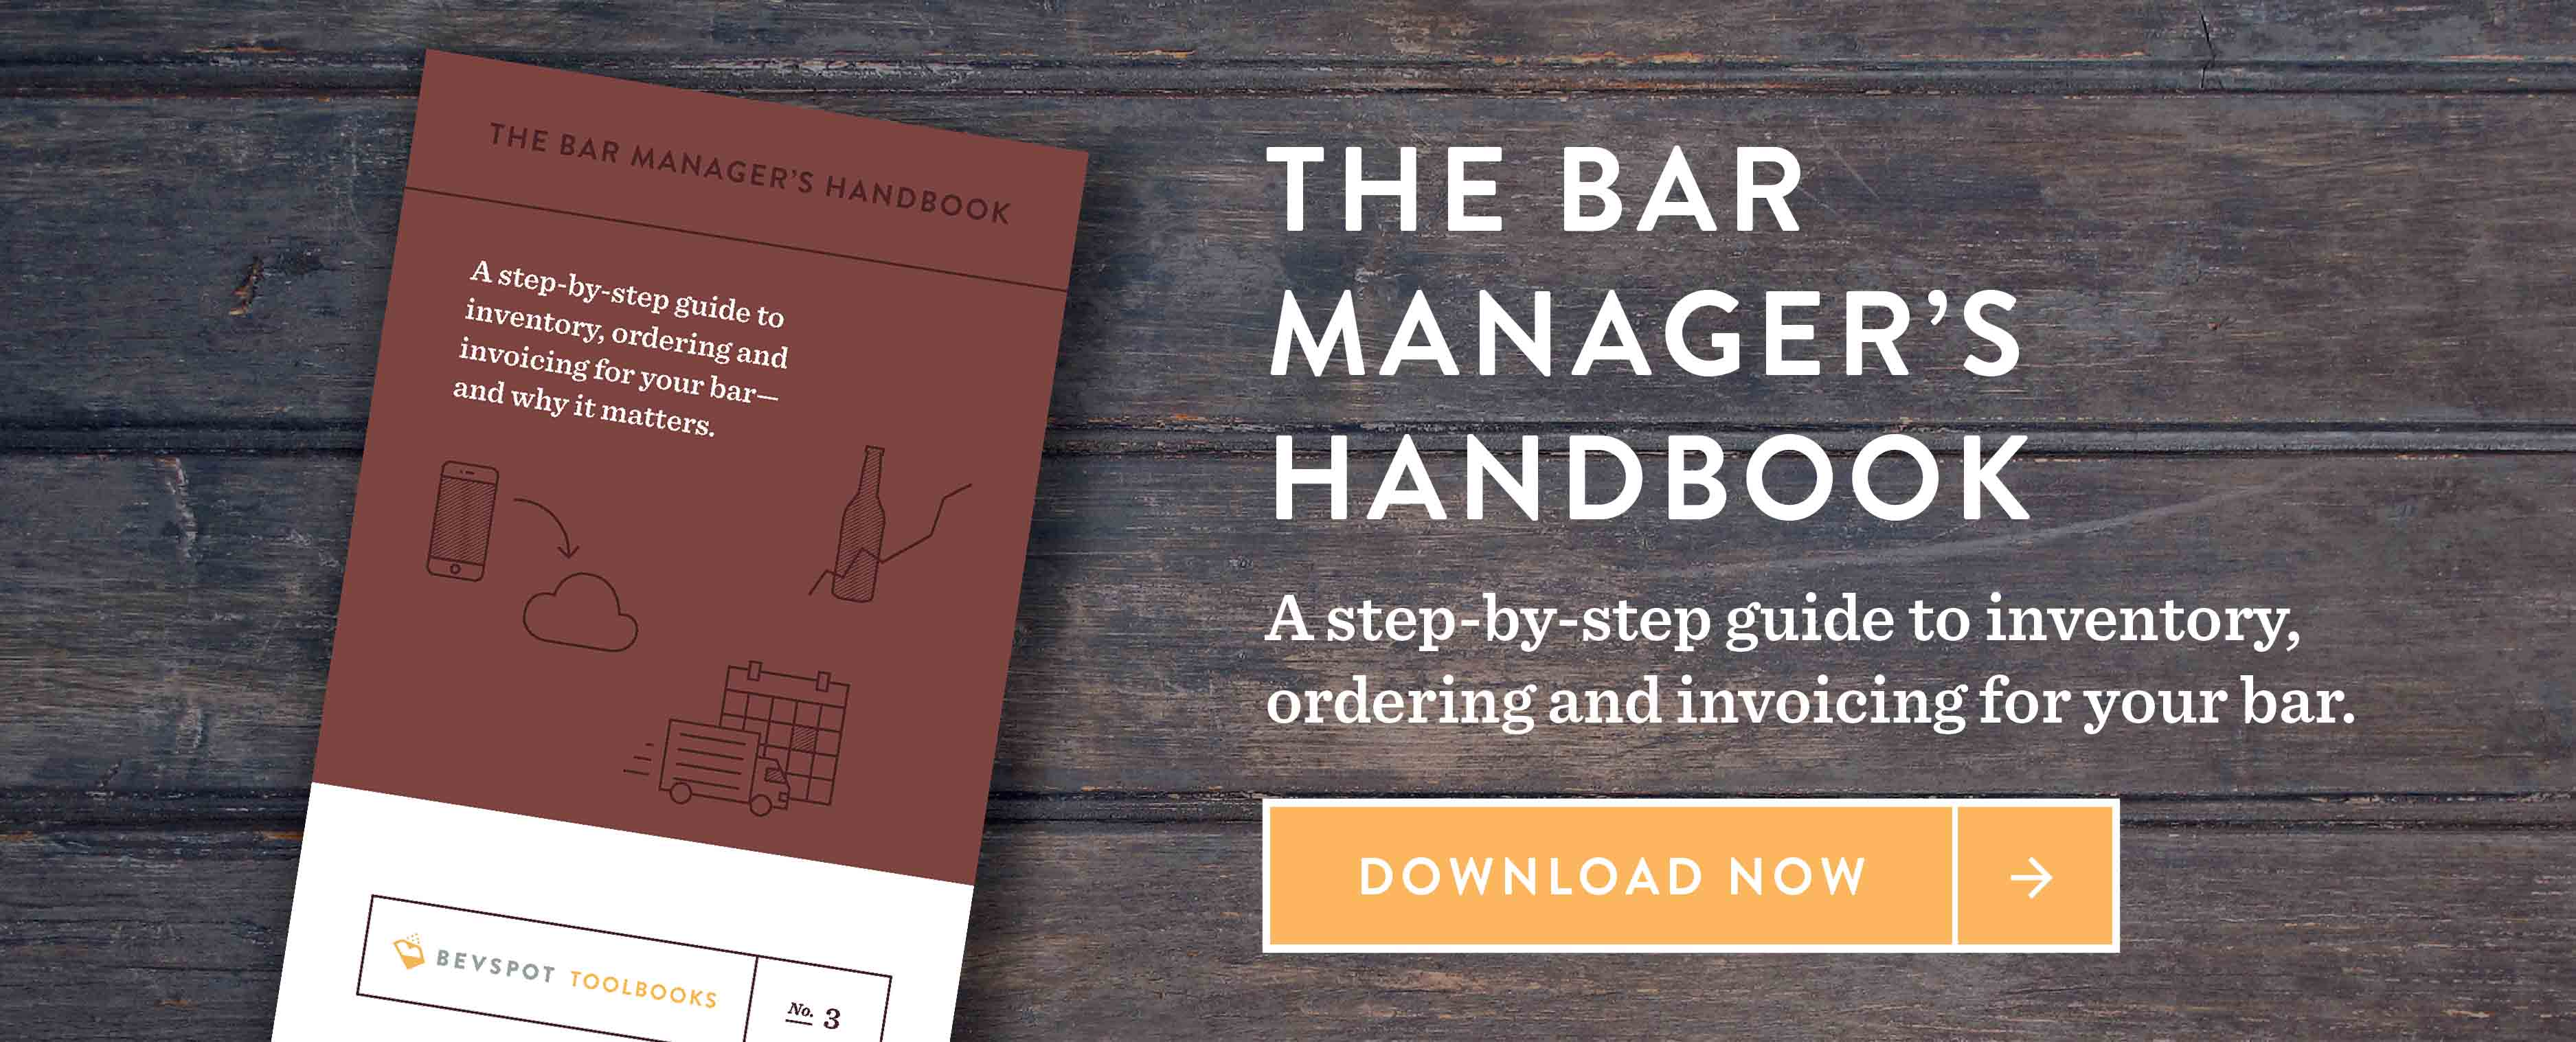 bevspot bar managers handbook